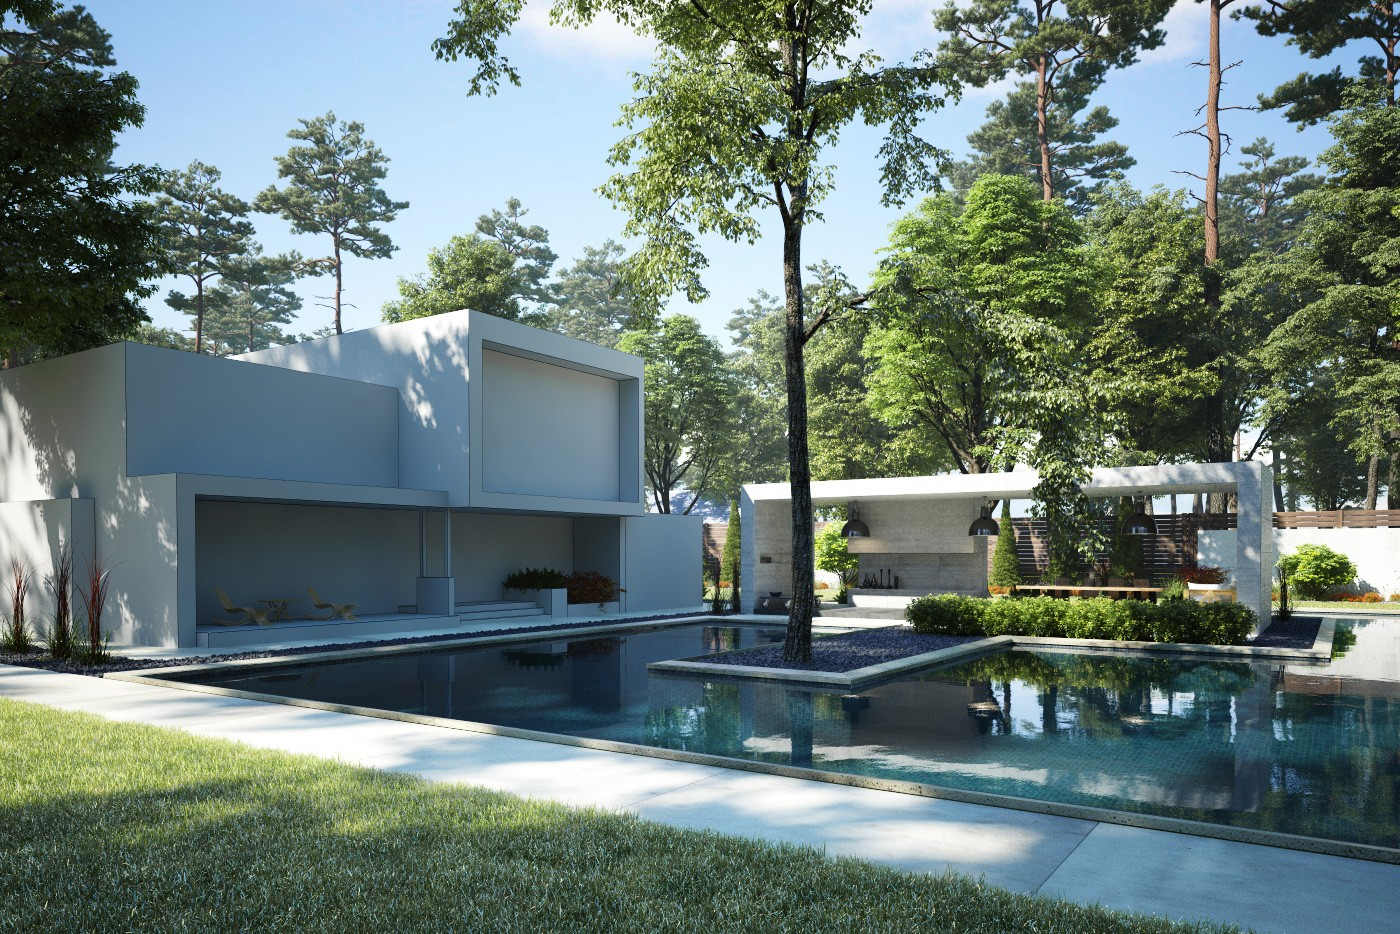 Archexteriors vol 30 max psd collection evermotion - Painting exterior render model ...